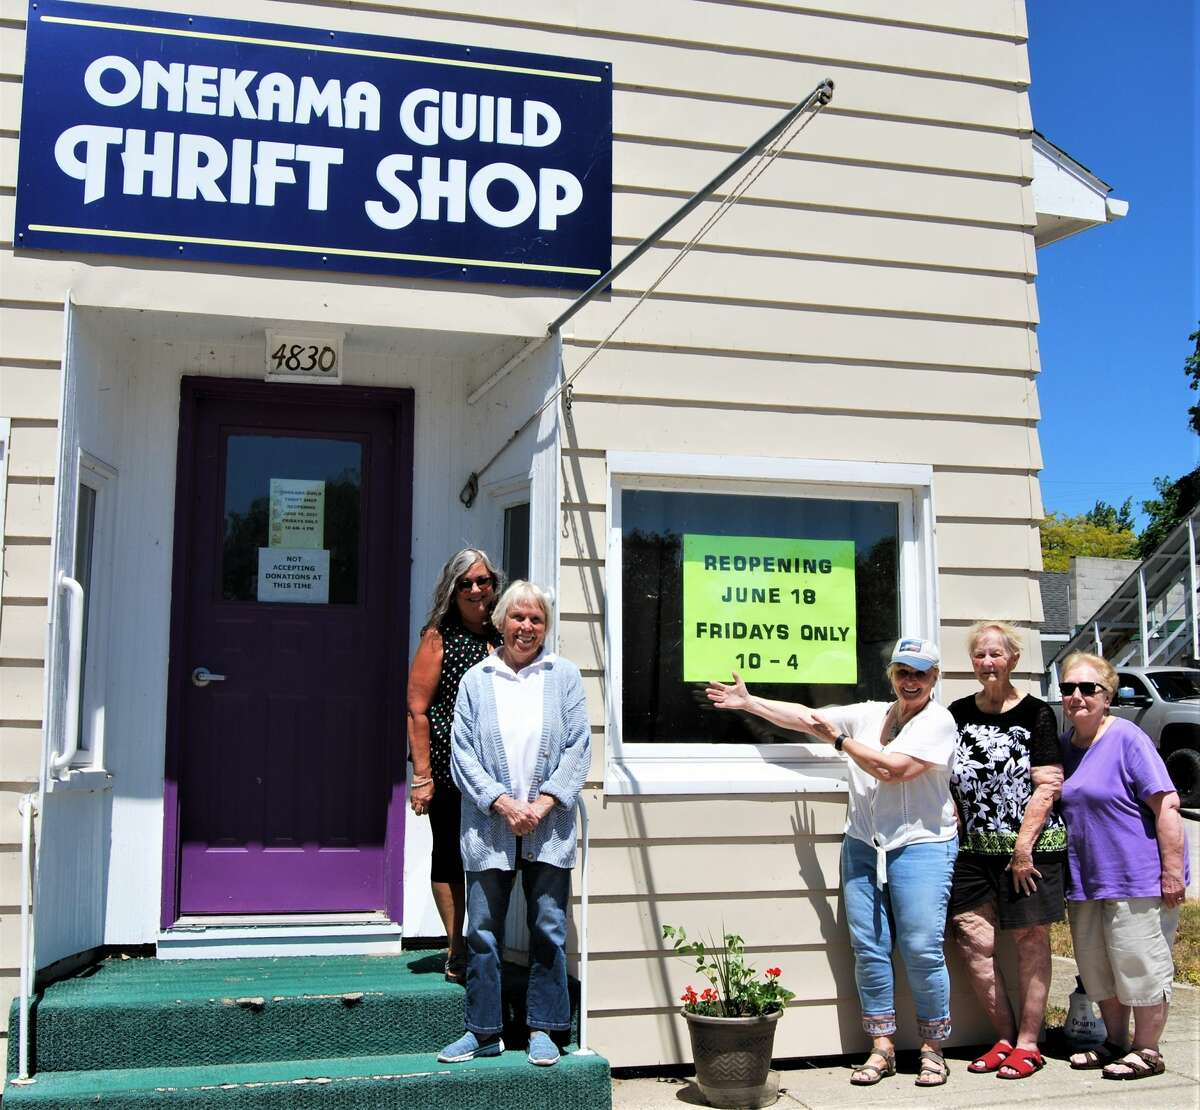 Onekama Guild members, eager to open the shop for 2021, pictured (from left to right) are Susan Halloran, Marcia Korwin, Suzanne Schwing, Becky Kline and Sue Kahl.